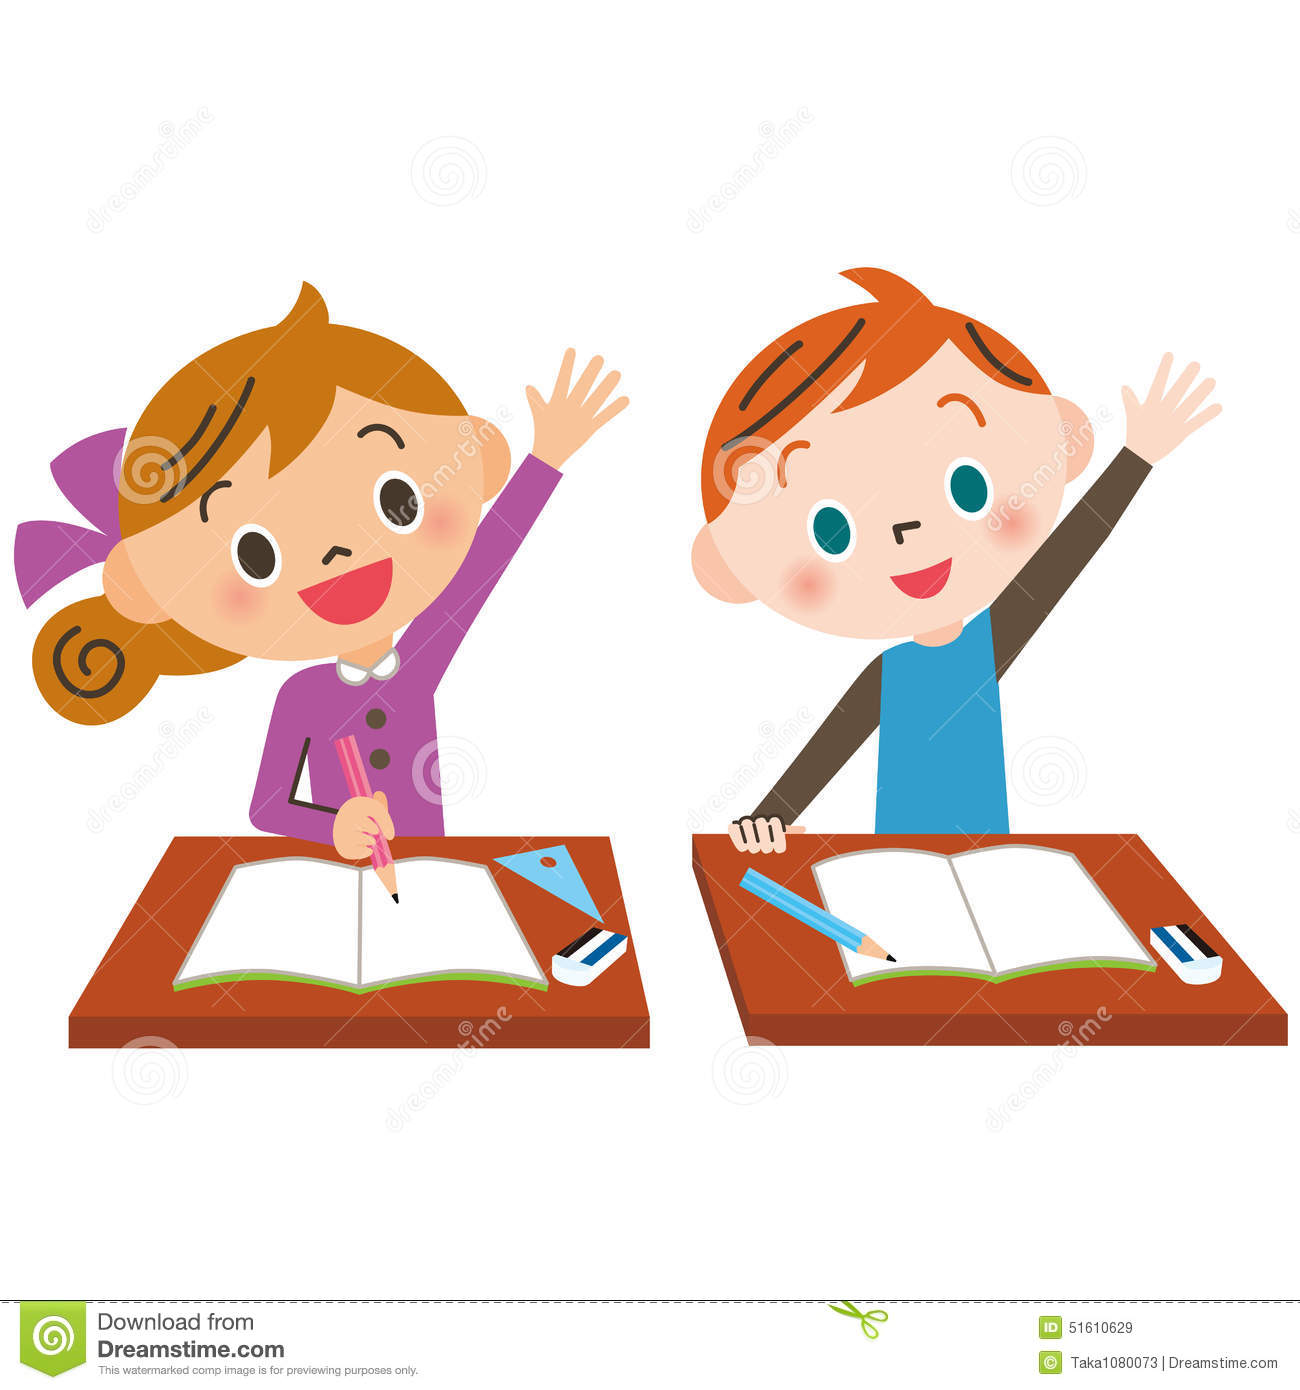 Children Hands up Clipart (58+).